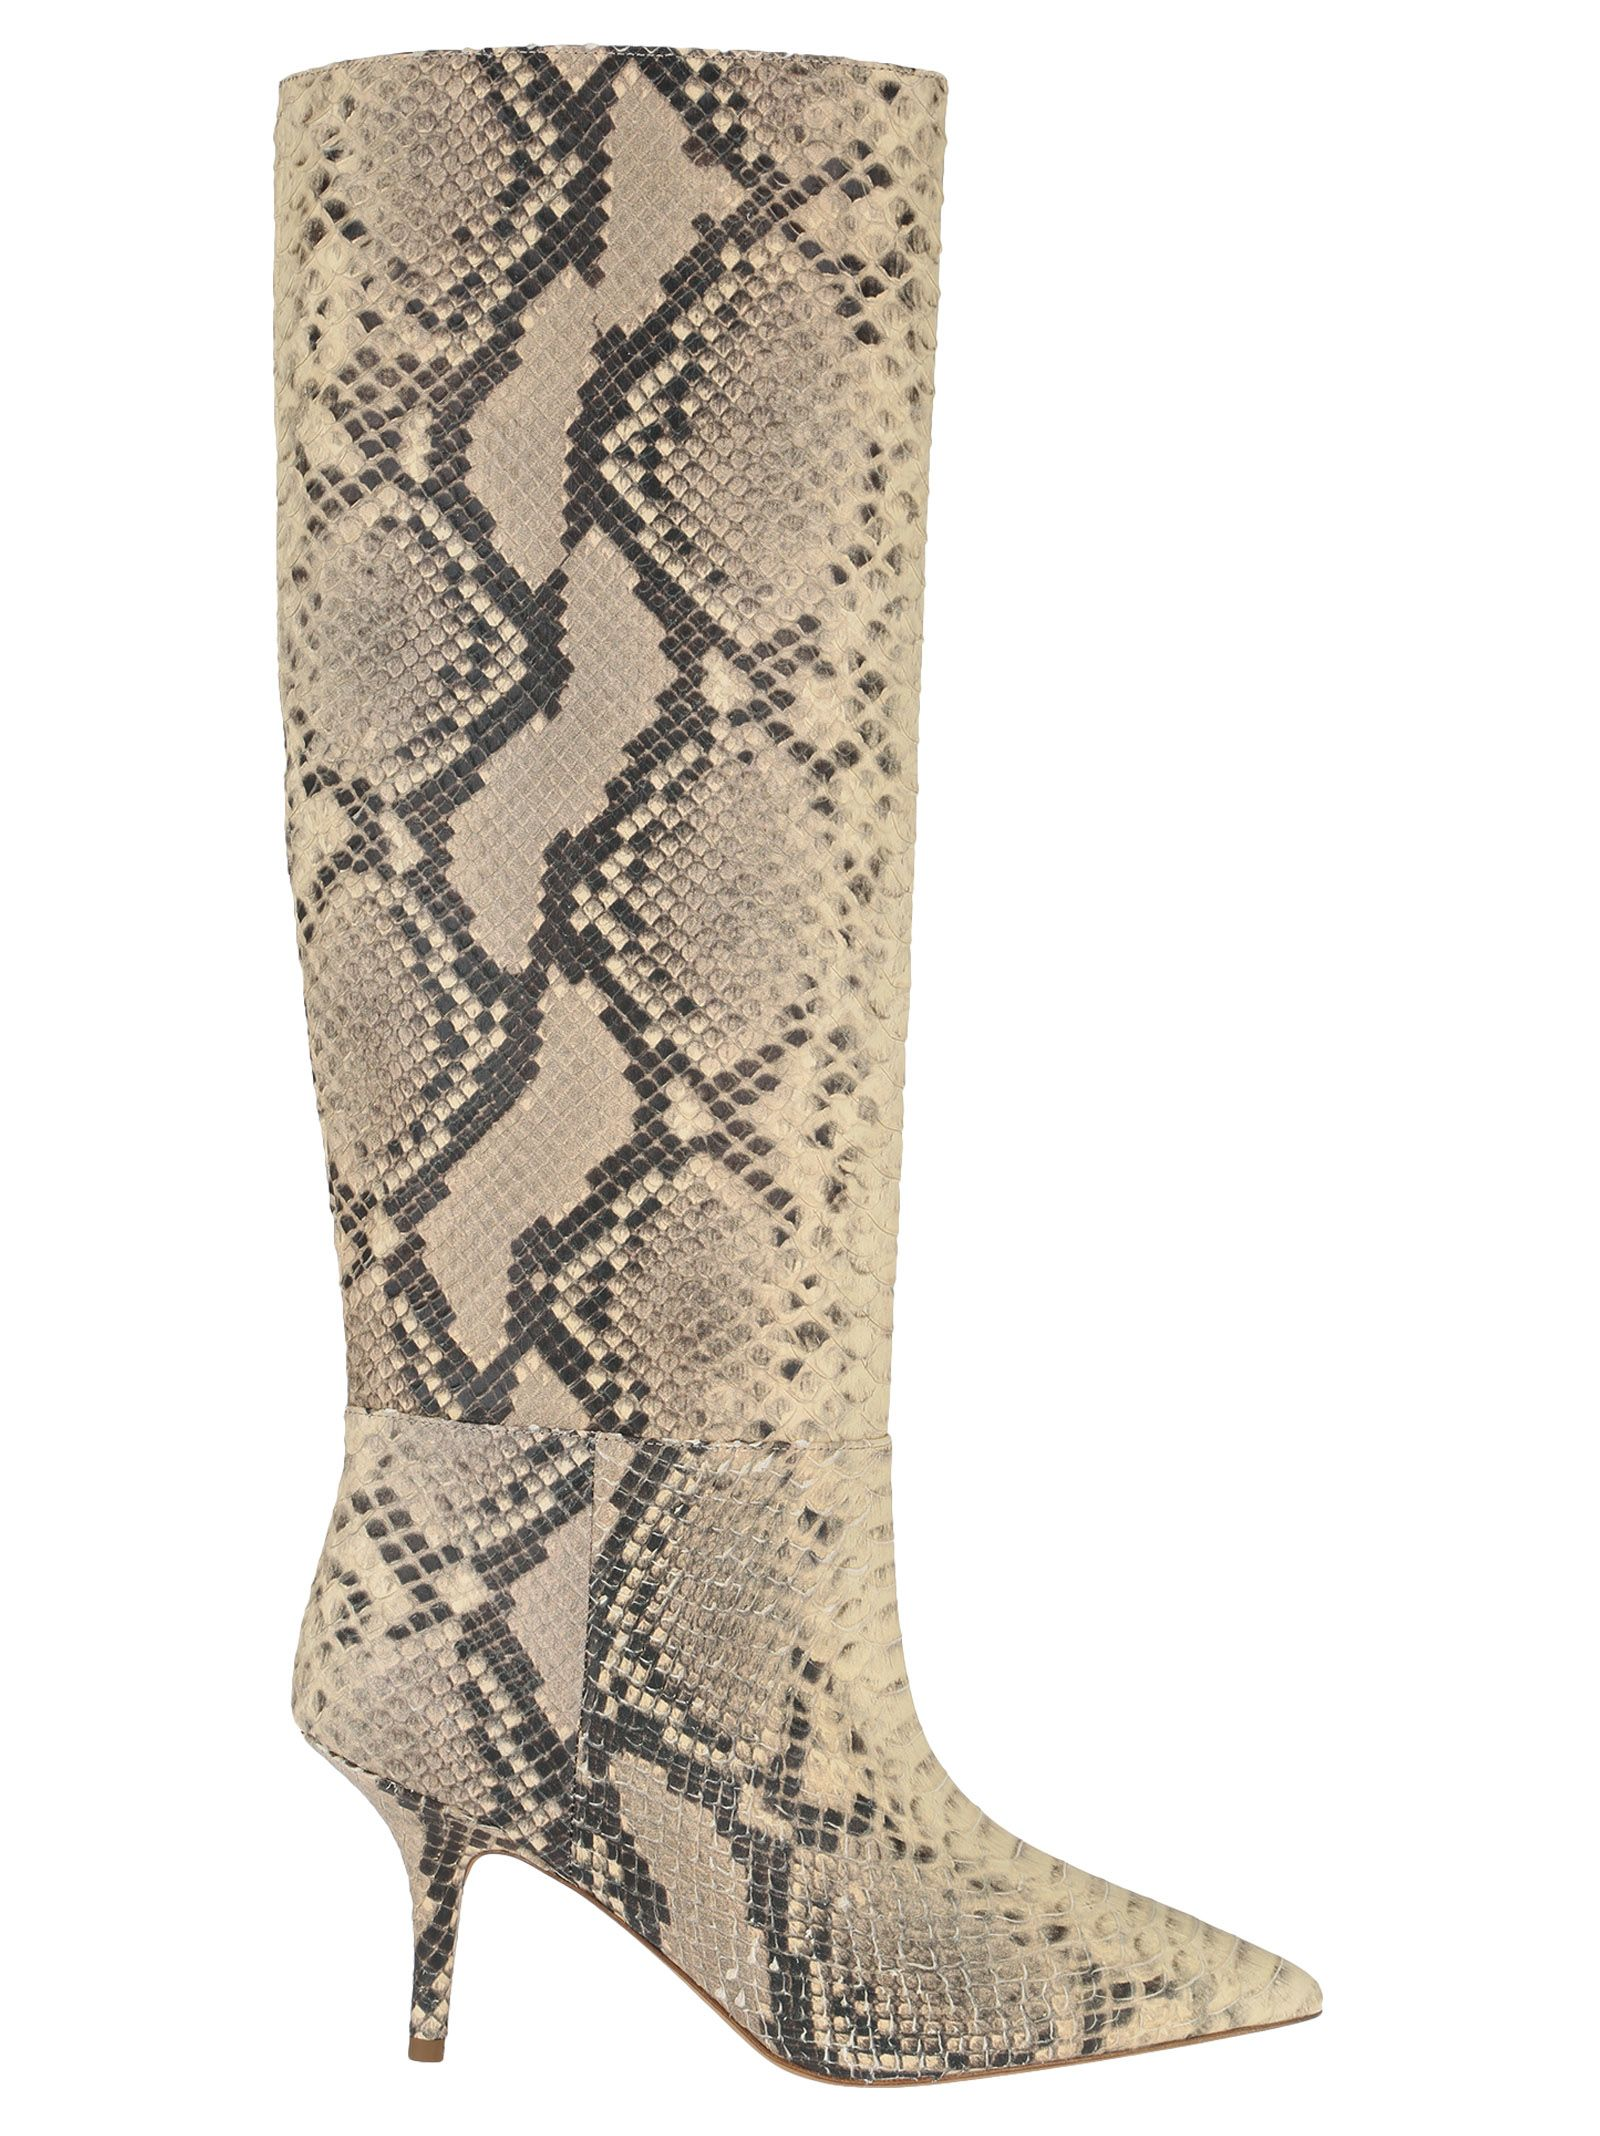 yeezy -  Kanye West Knee High Boot